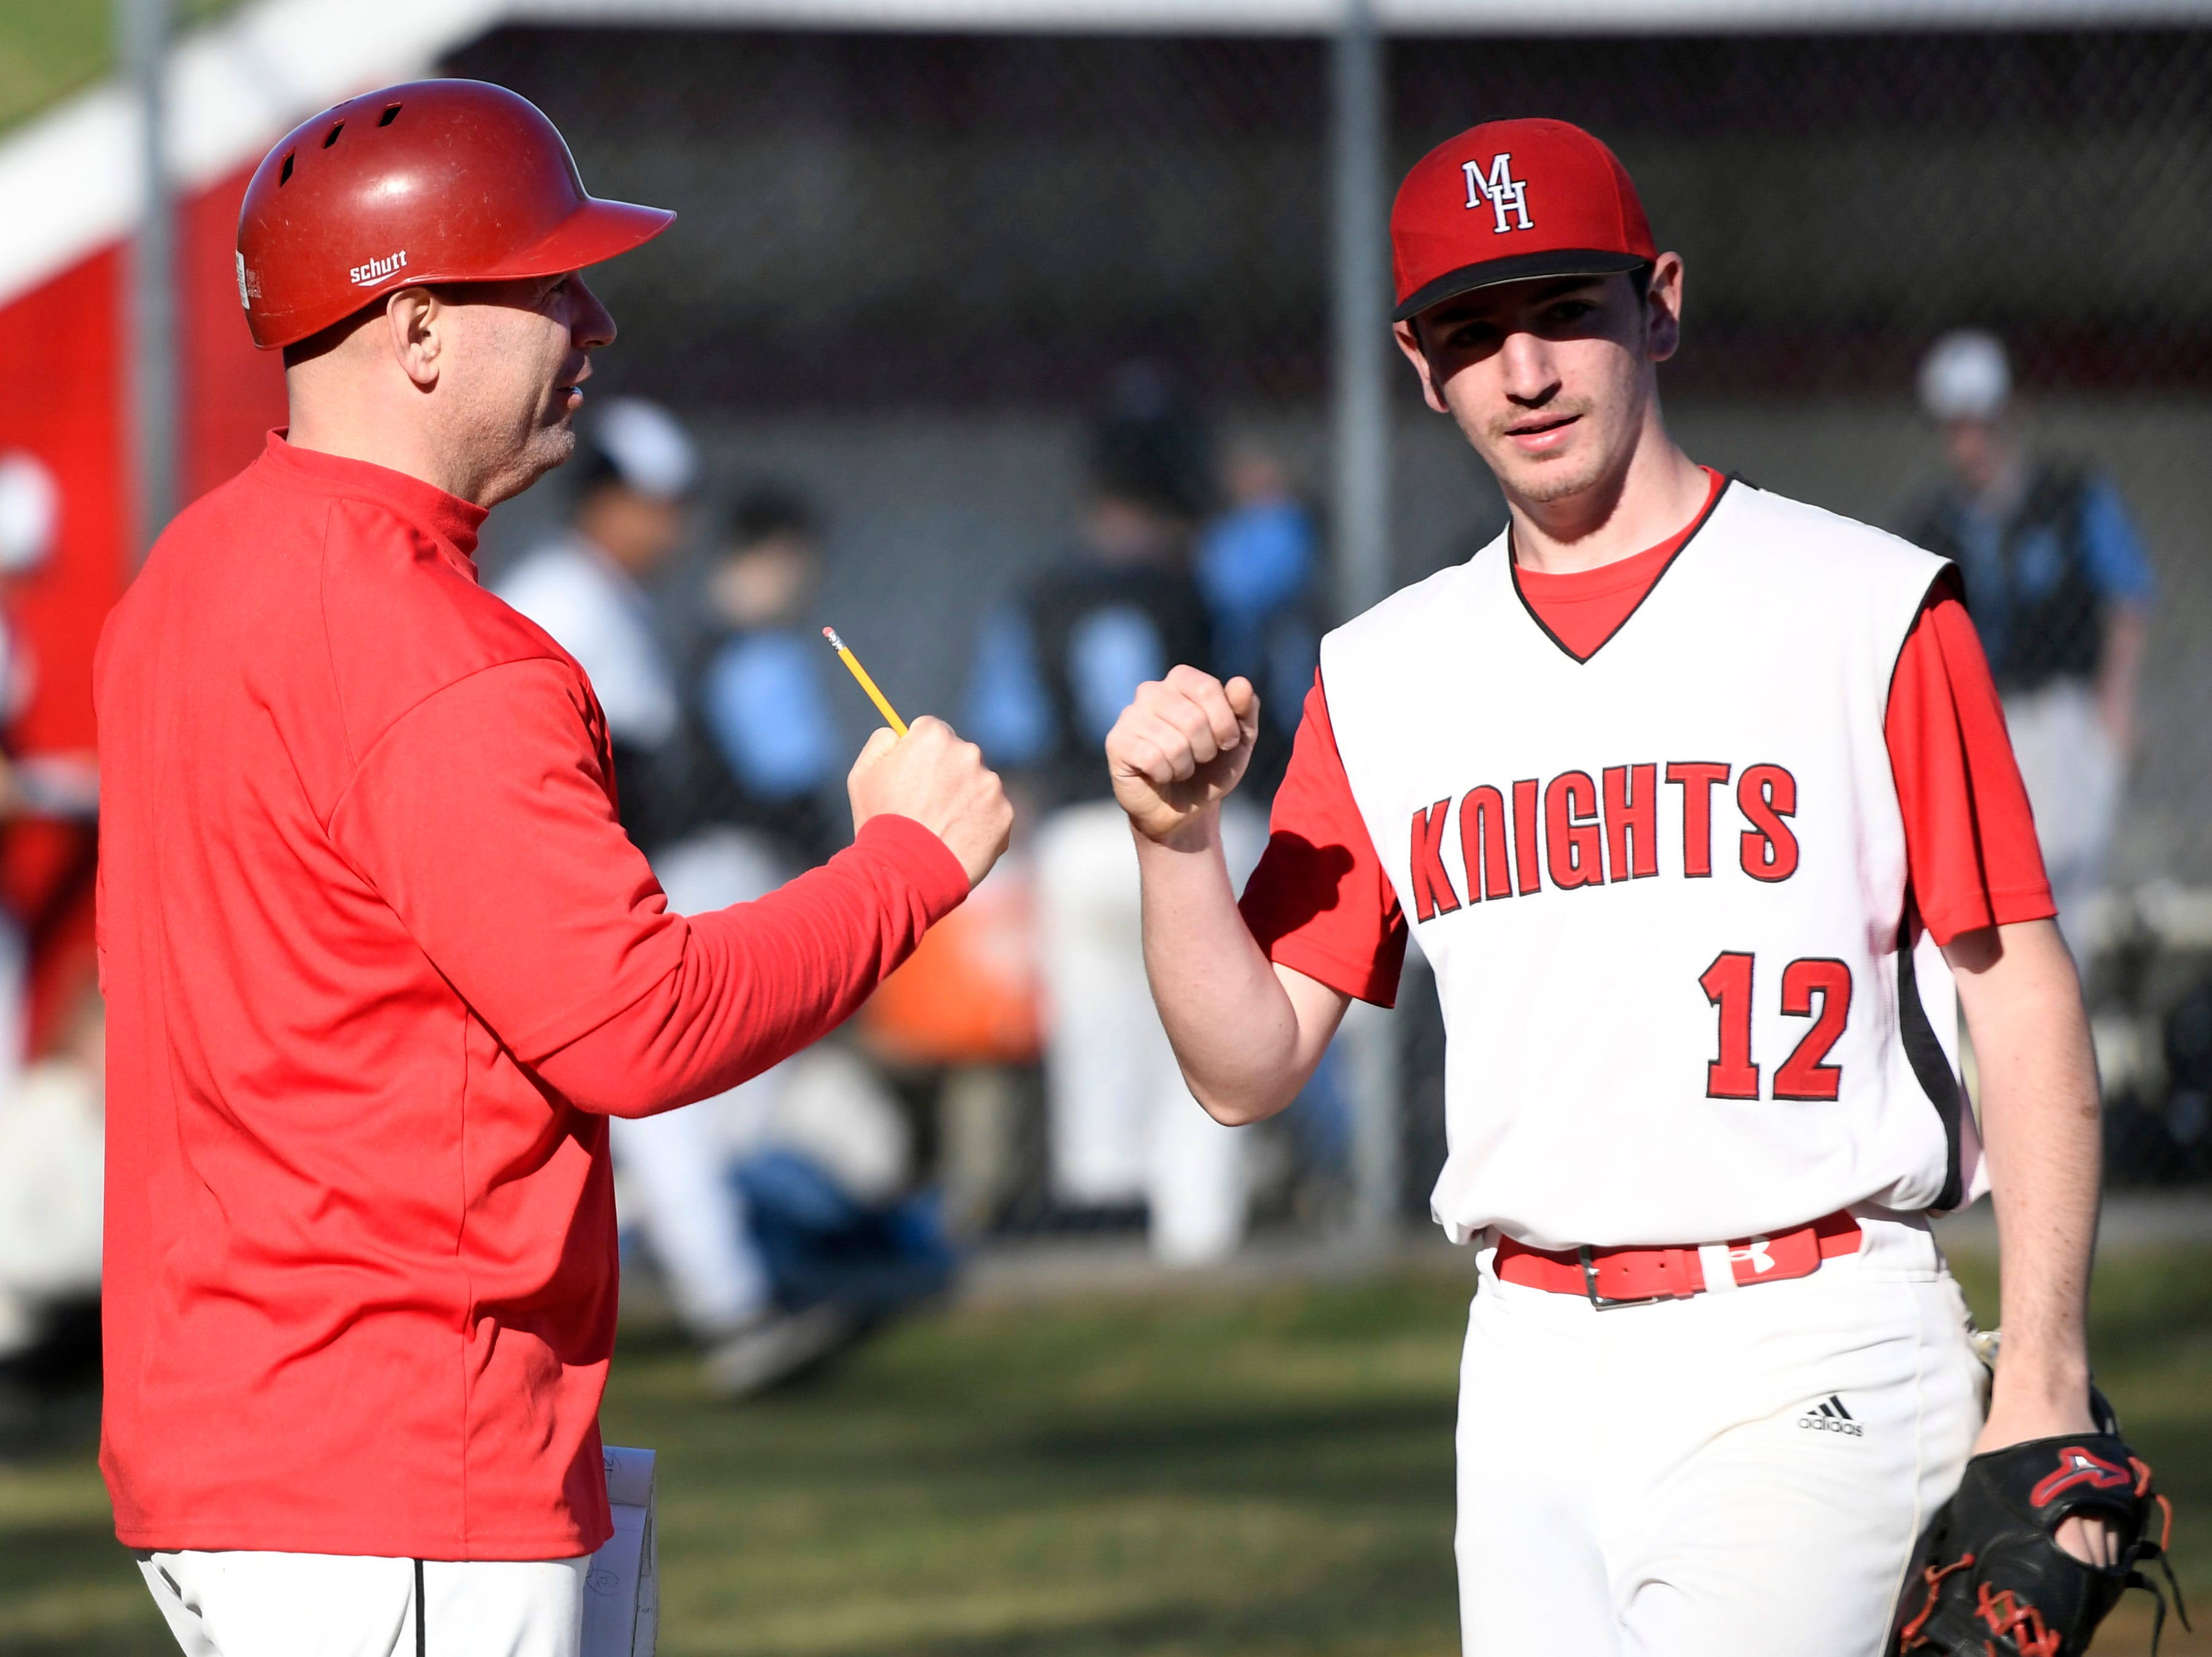 Morris Hills head coach Bert Giovine fist-bumps Jack Sautter during a game against Parsippany Hills on Wednesday, April 10, 2019, in Rockaway.